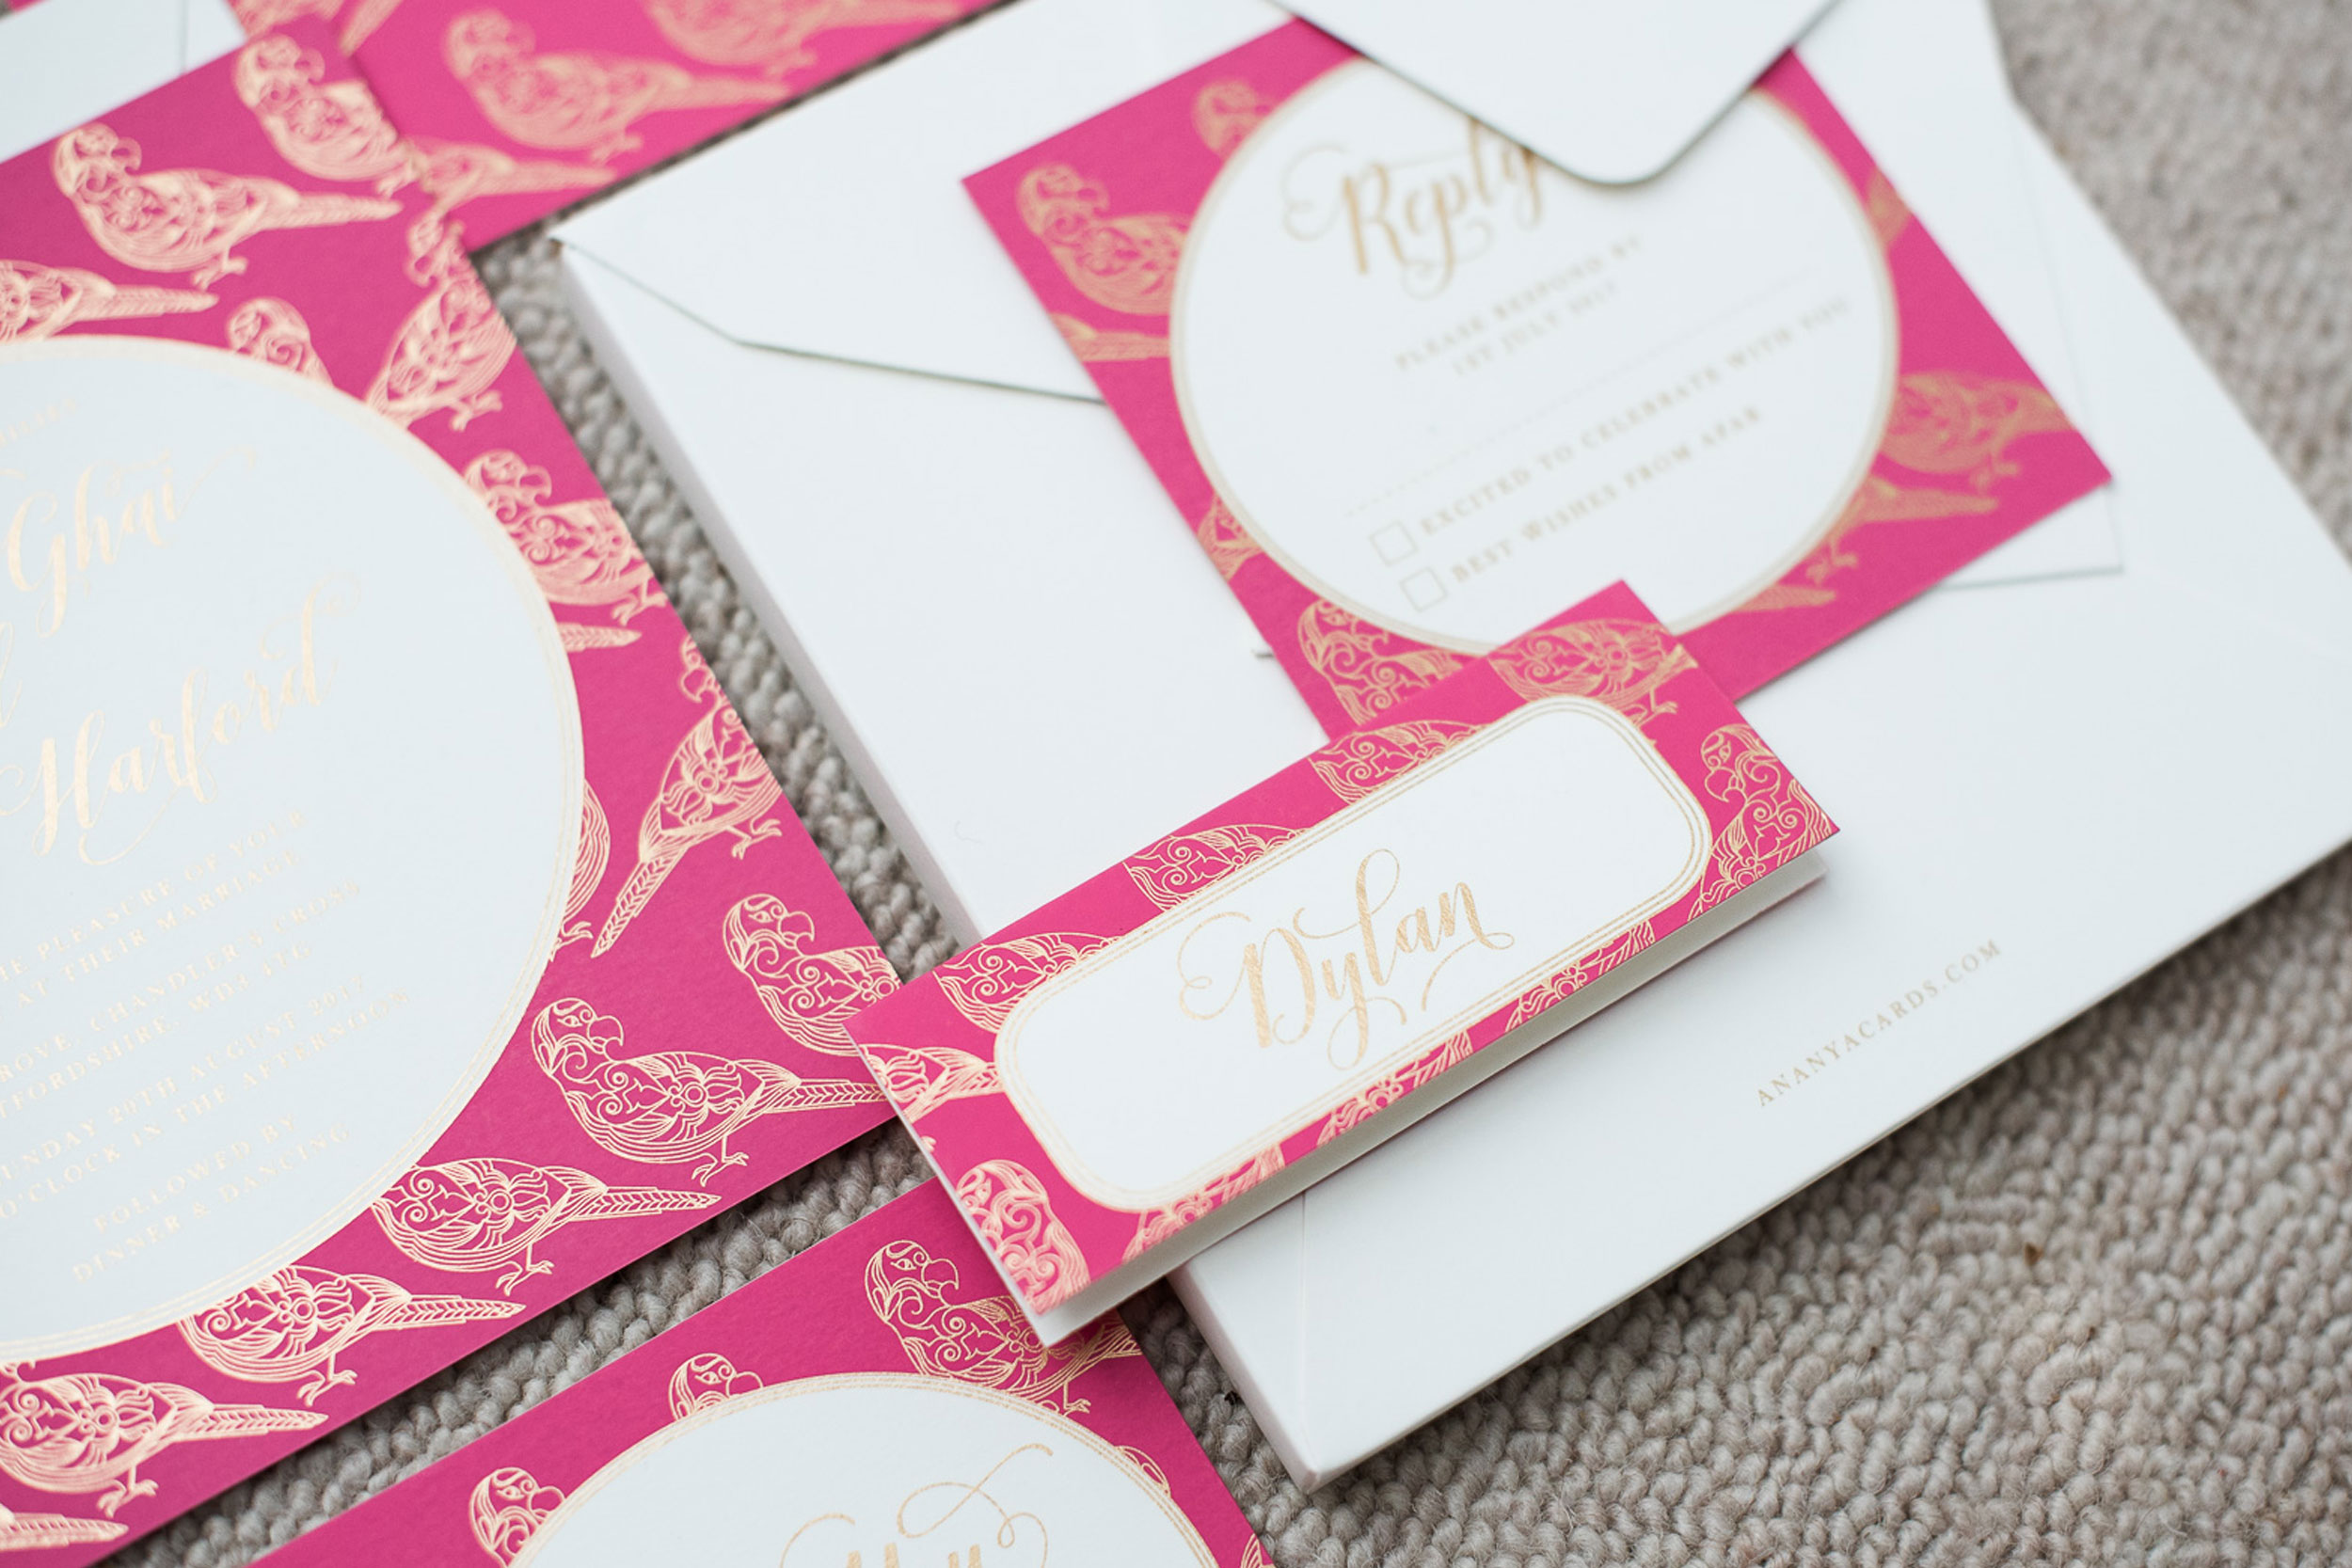 trio-of-life-pink-parrot-place-card-wedding-invitation.jpg